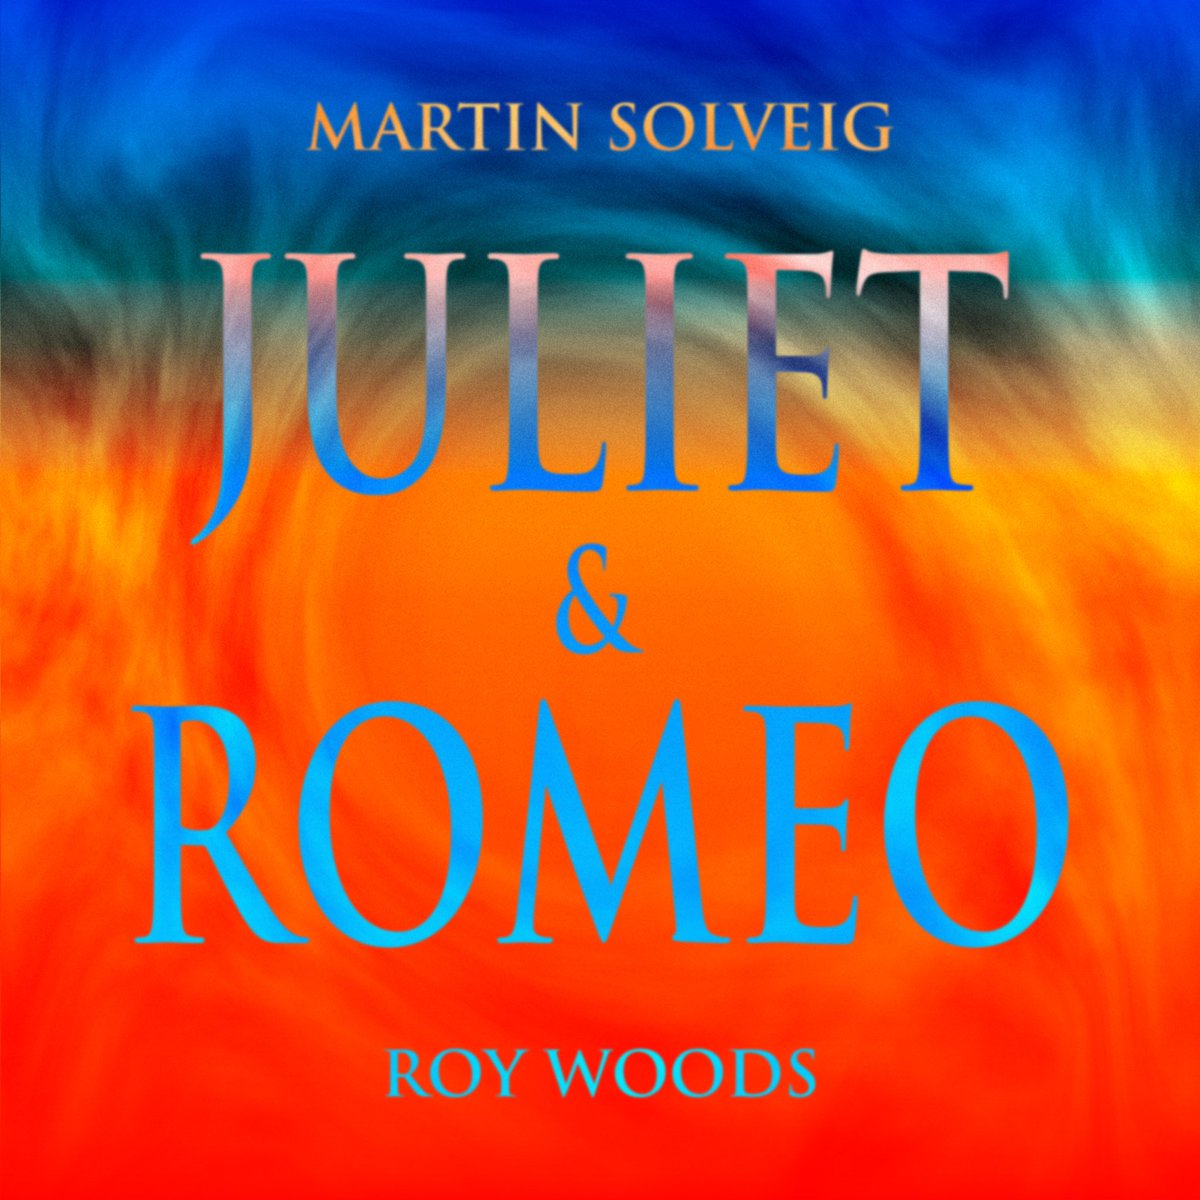 Today's the big day! My new single 'JULIET & ROMEO' with @RoyWoods is out now 🧡 Hope this song will brighten your day! martinsolveig.lnk.to/JulietandRomeo